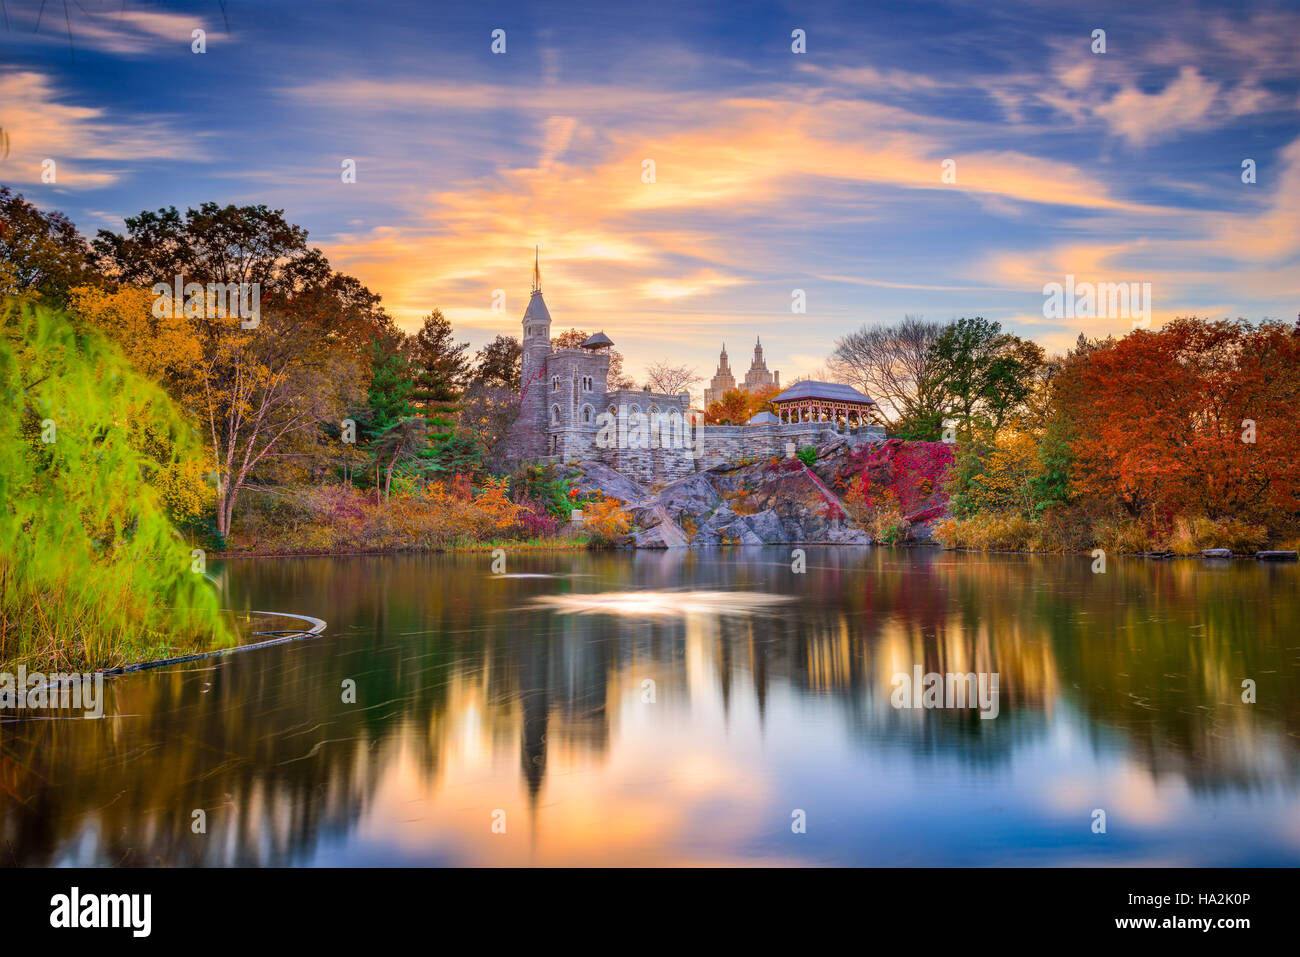 Central Park, New York City at Belvedere Castle during an autumn sunset. - Stock Image